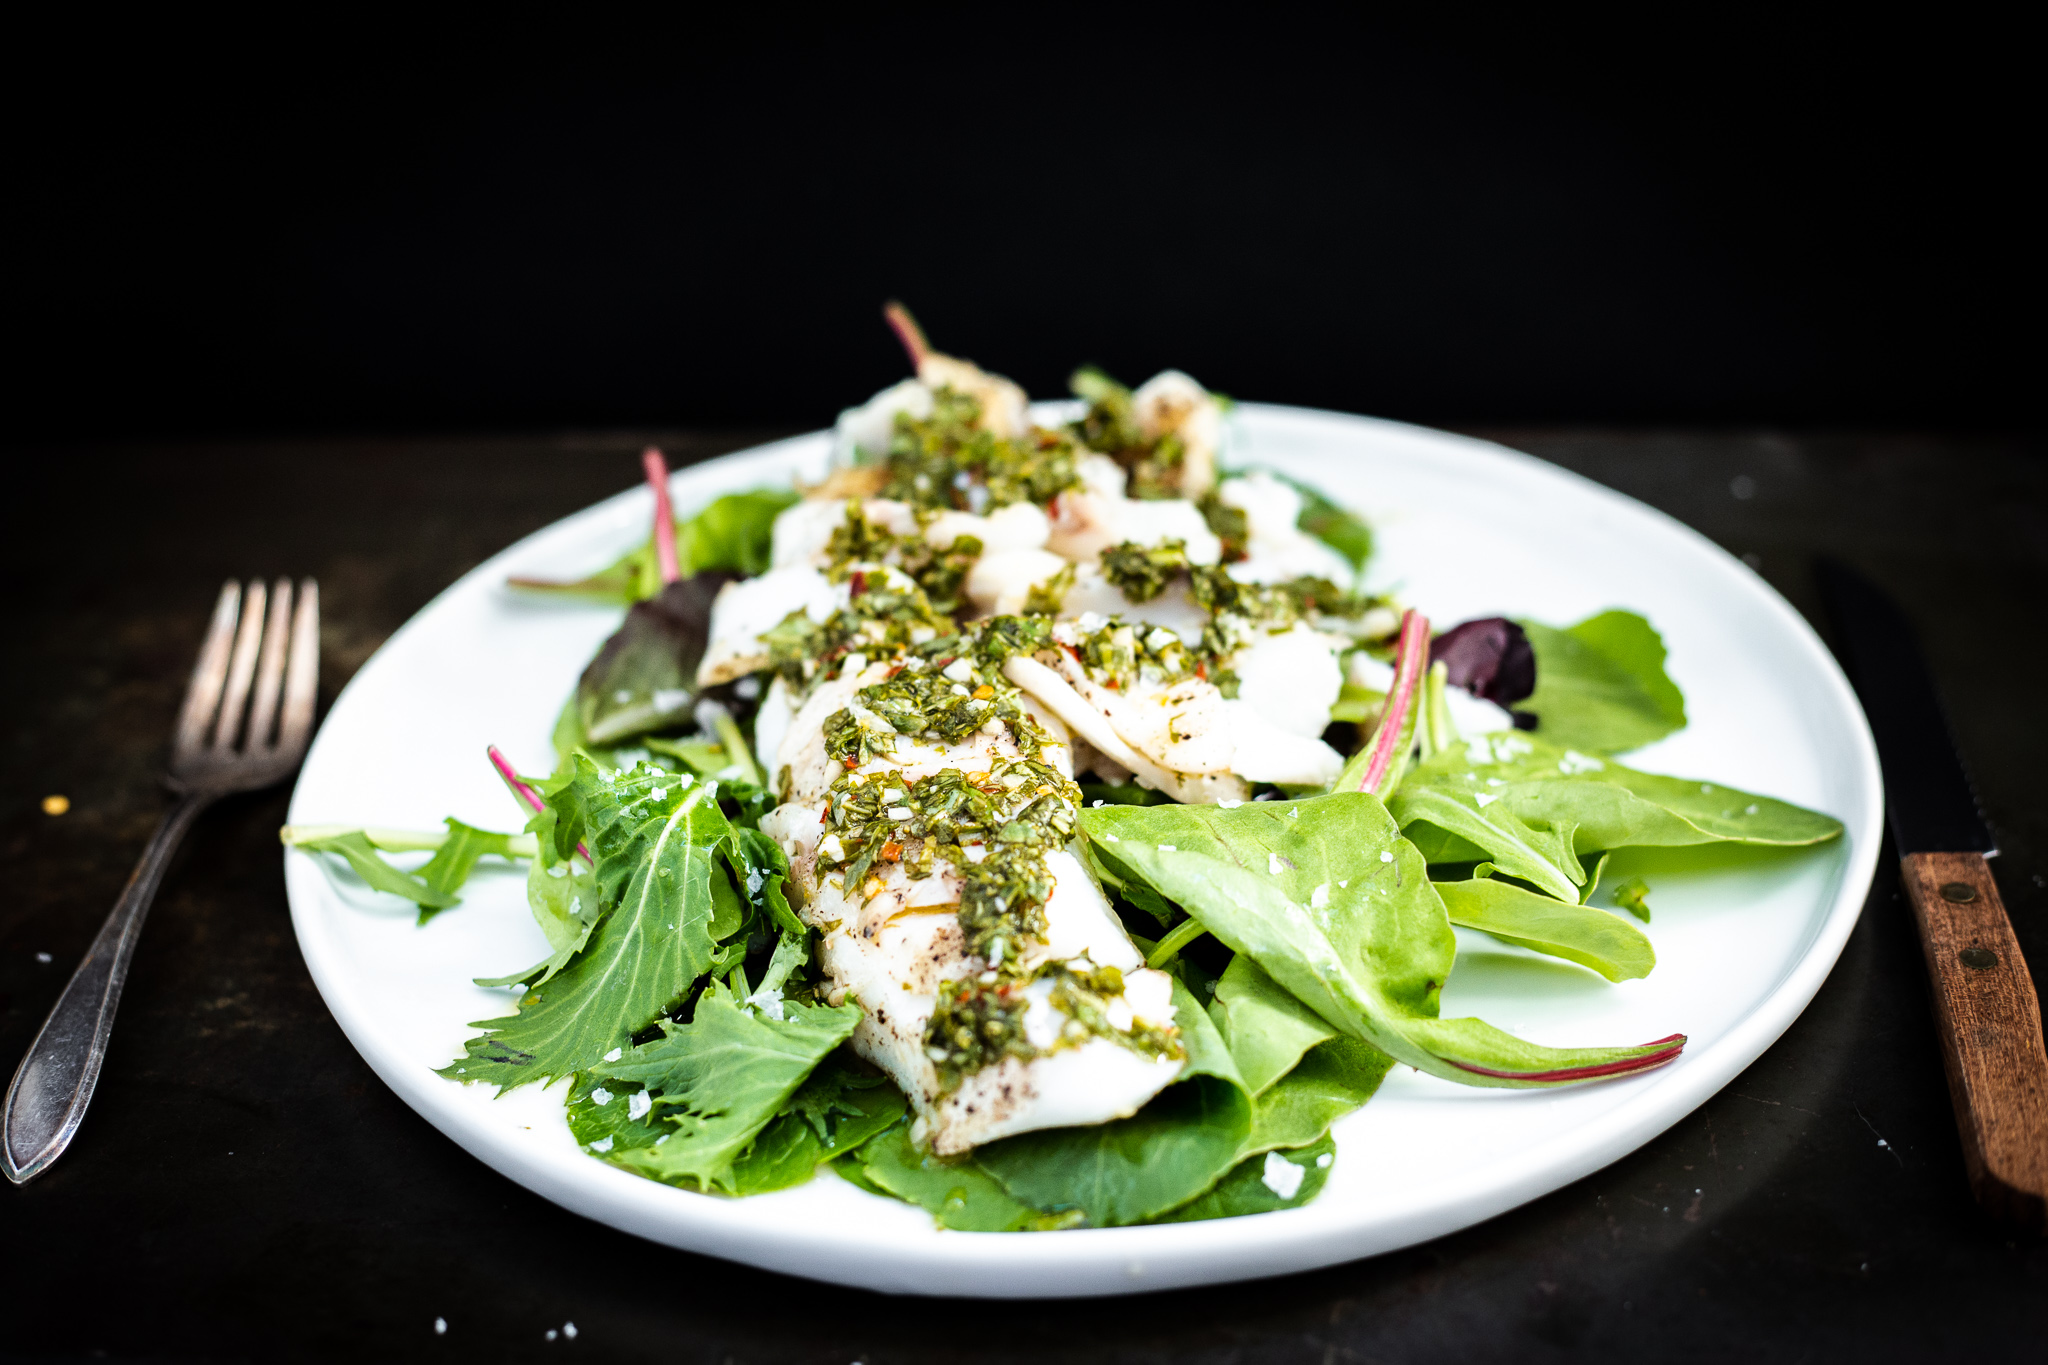 Grilled Cod with Chimichurri Sauce